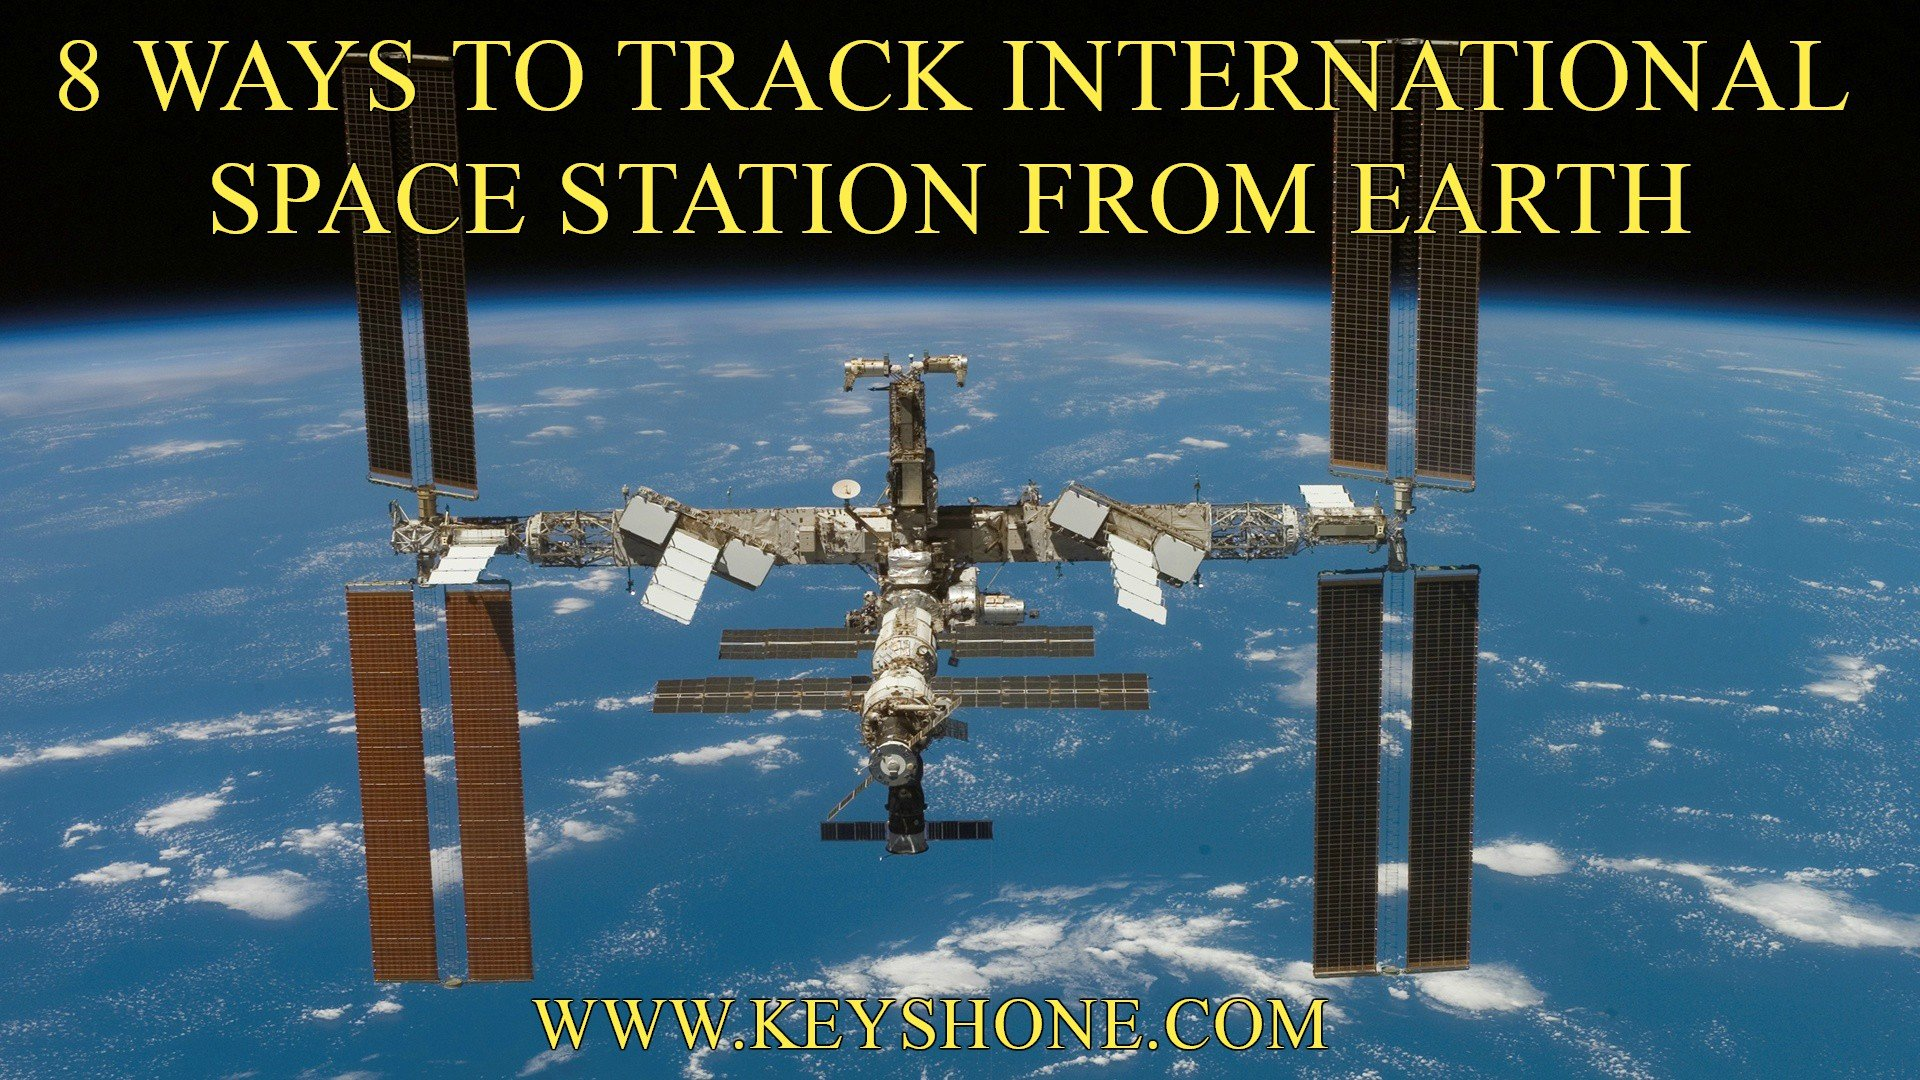 8 Ways to Track International Space Station from Earth